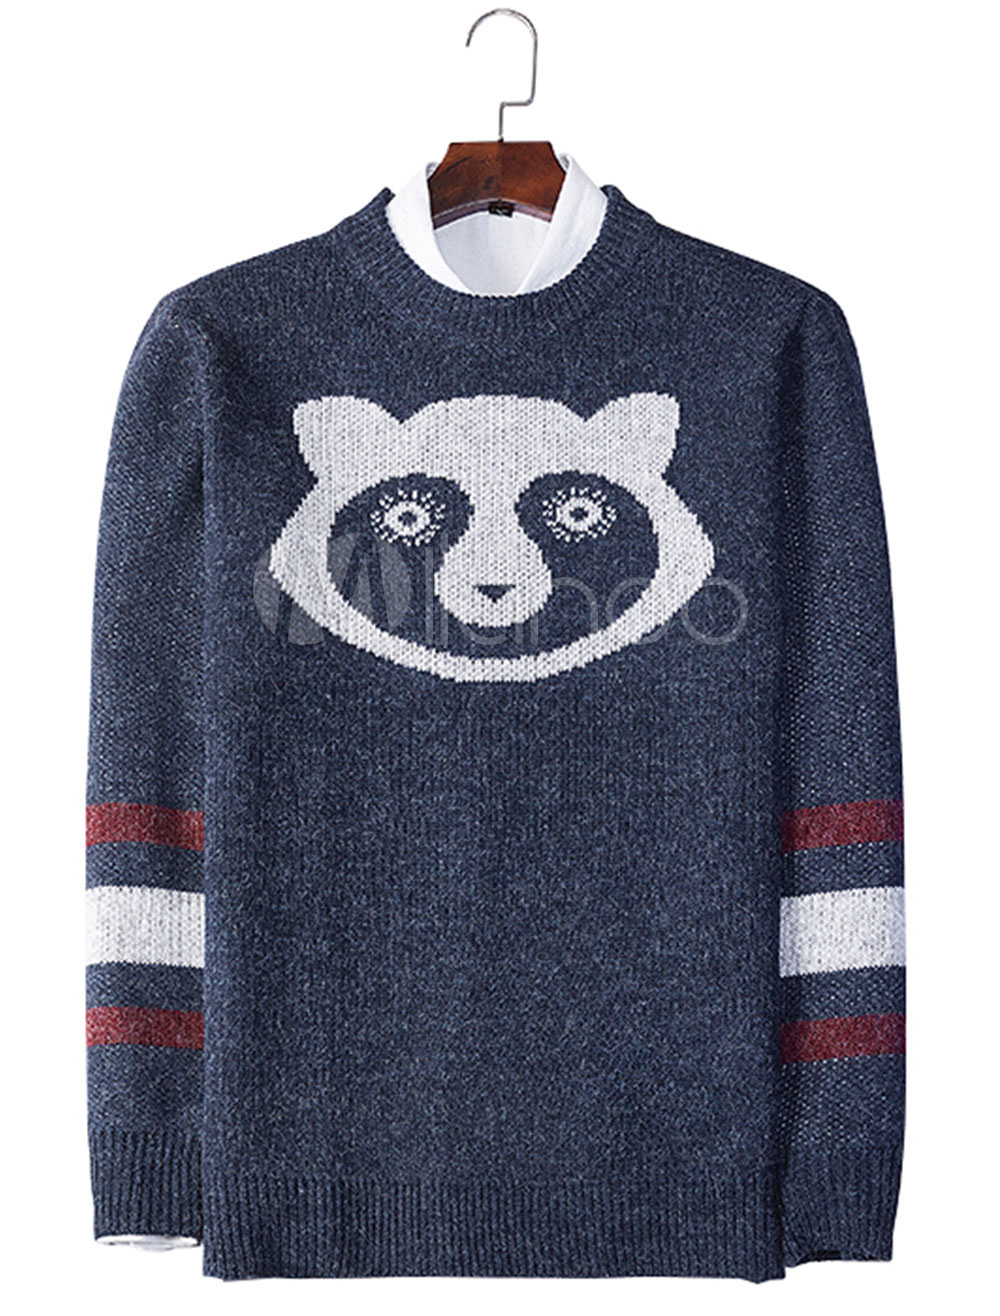 Buy Men Sweater Deep Blue Round Neck Long Sleeve Casual Sweater Wool Knit Sweater for $22.49 in Milanoo store